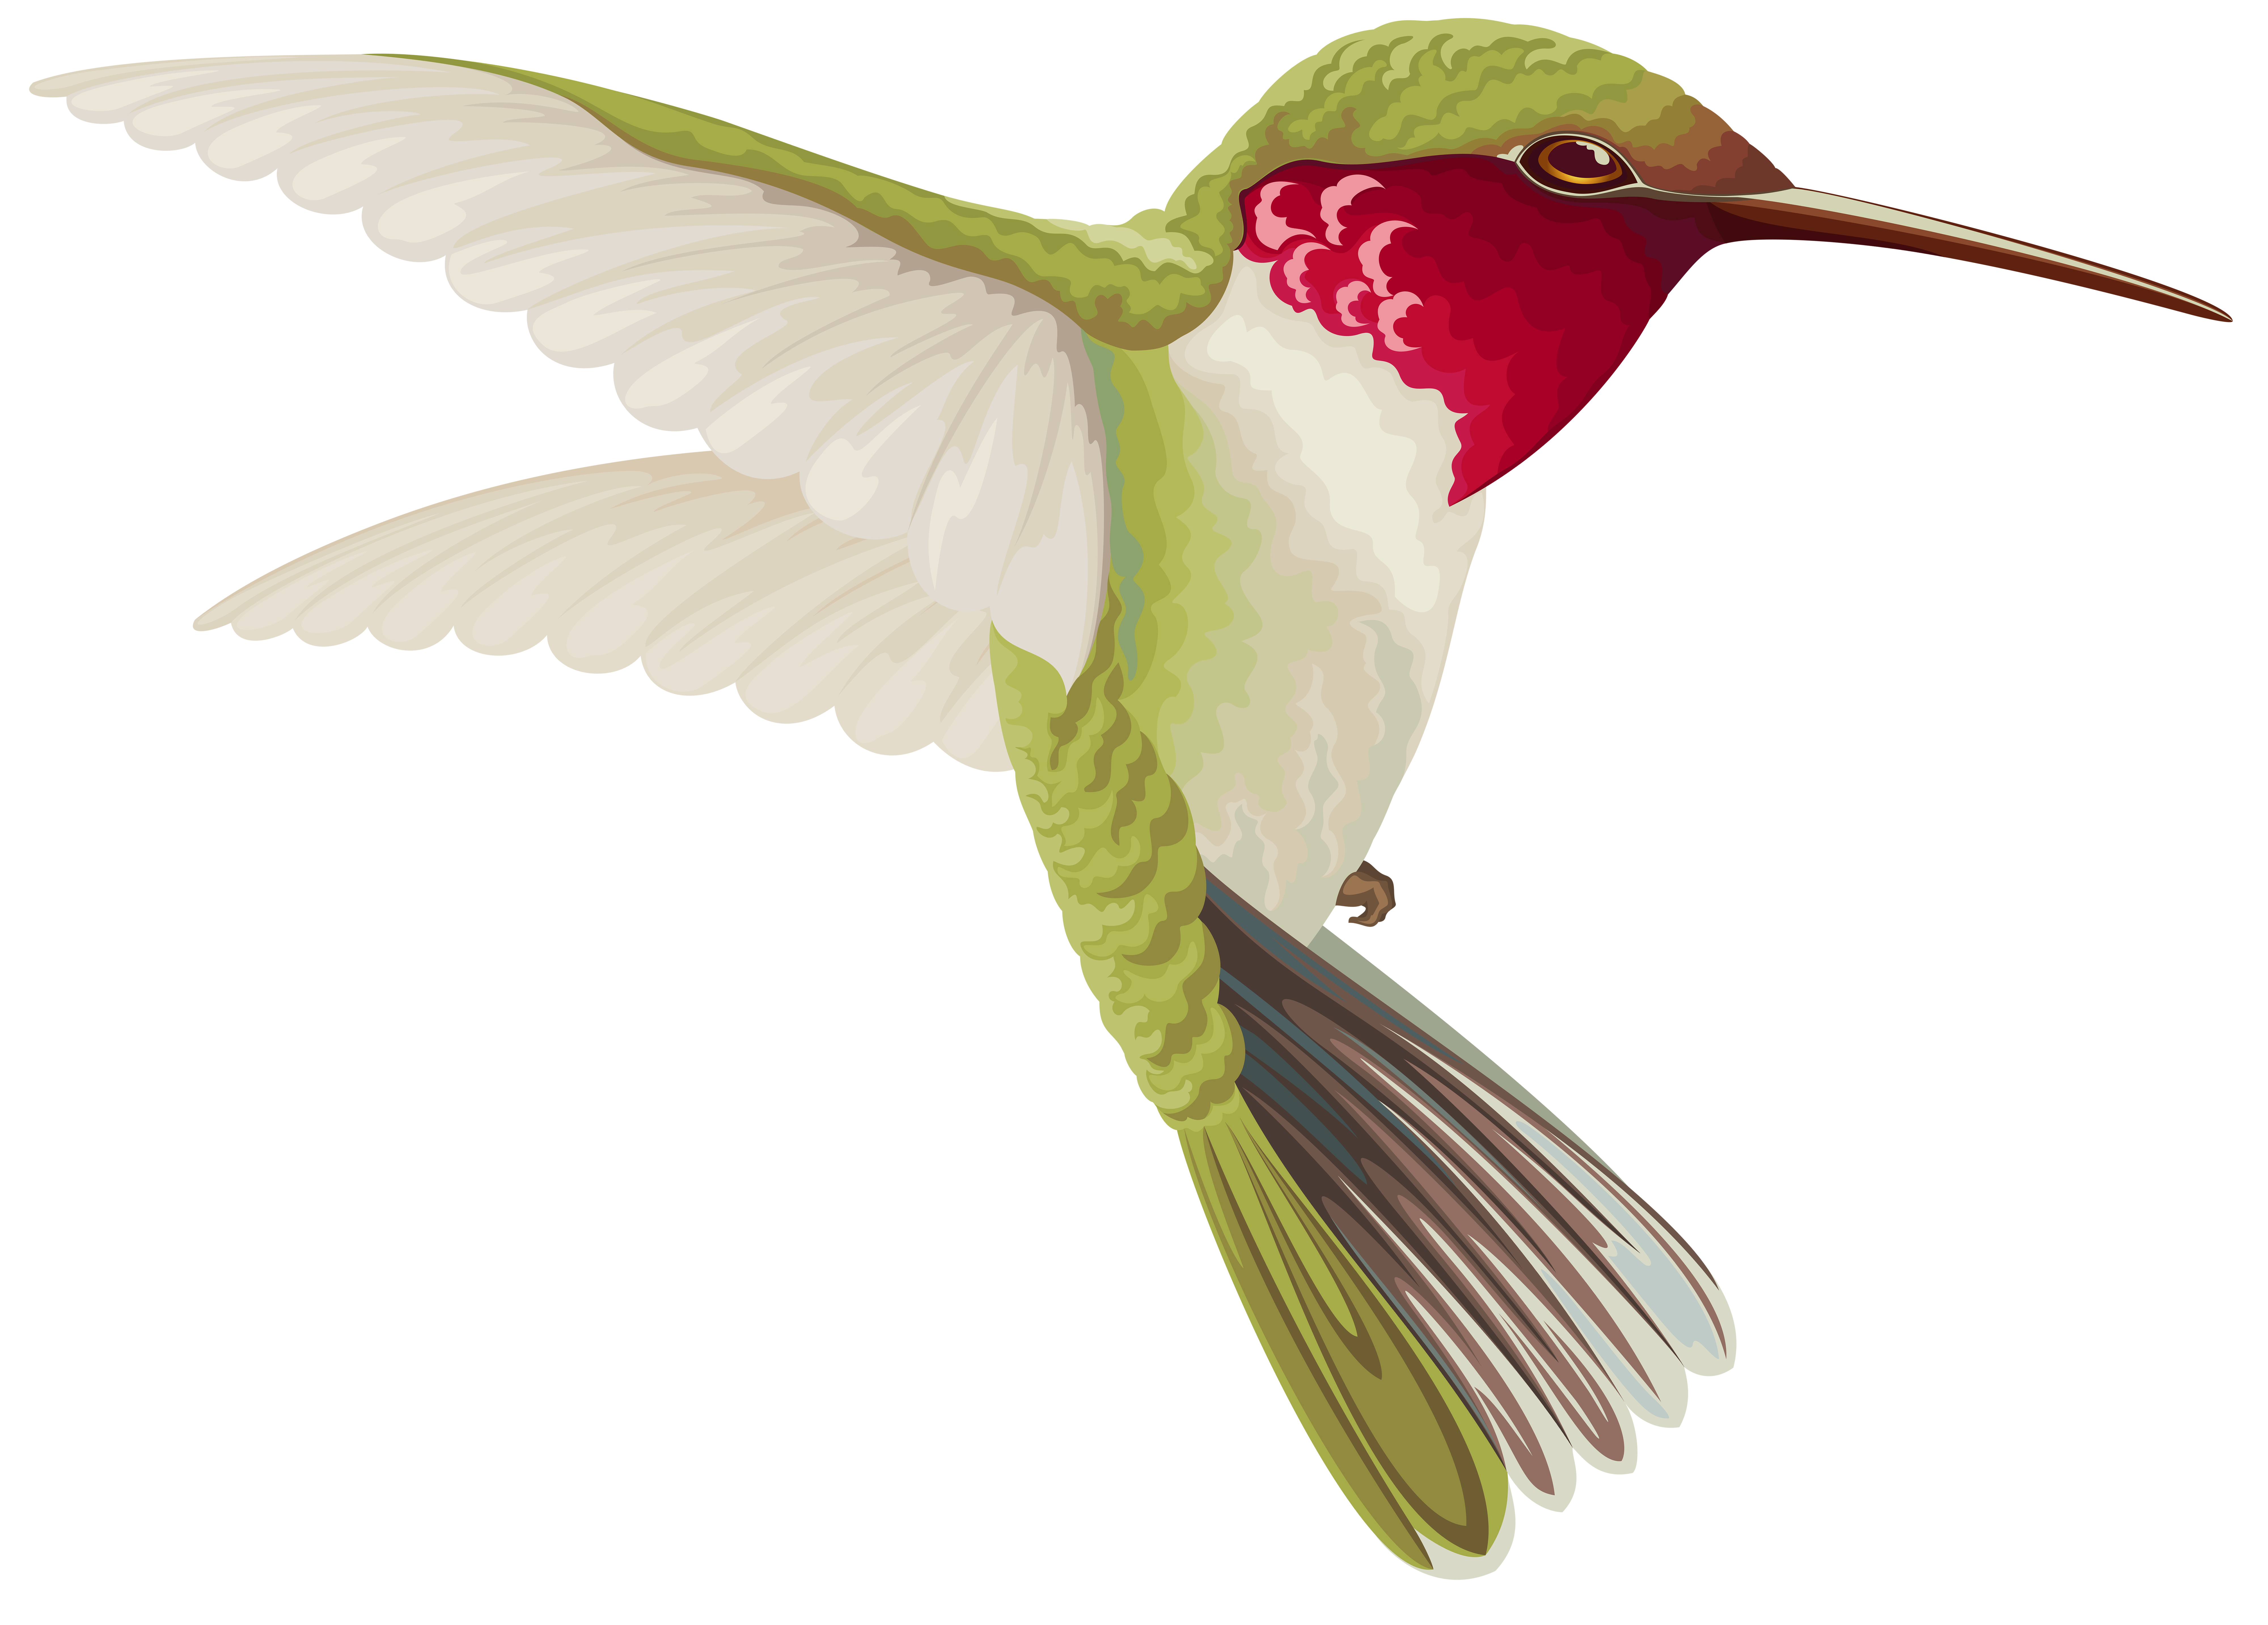 Humming Bird Transparent Clip Art Image | Gallery Yopriceville ... clip royalty free library